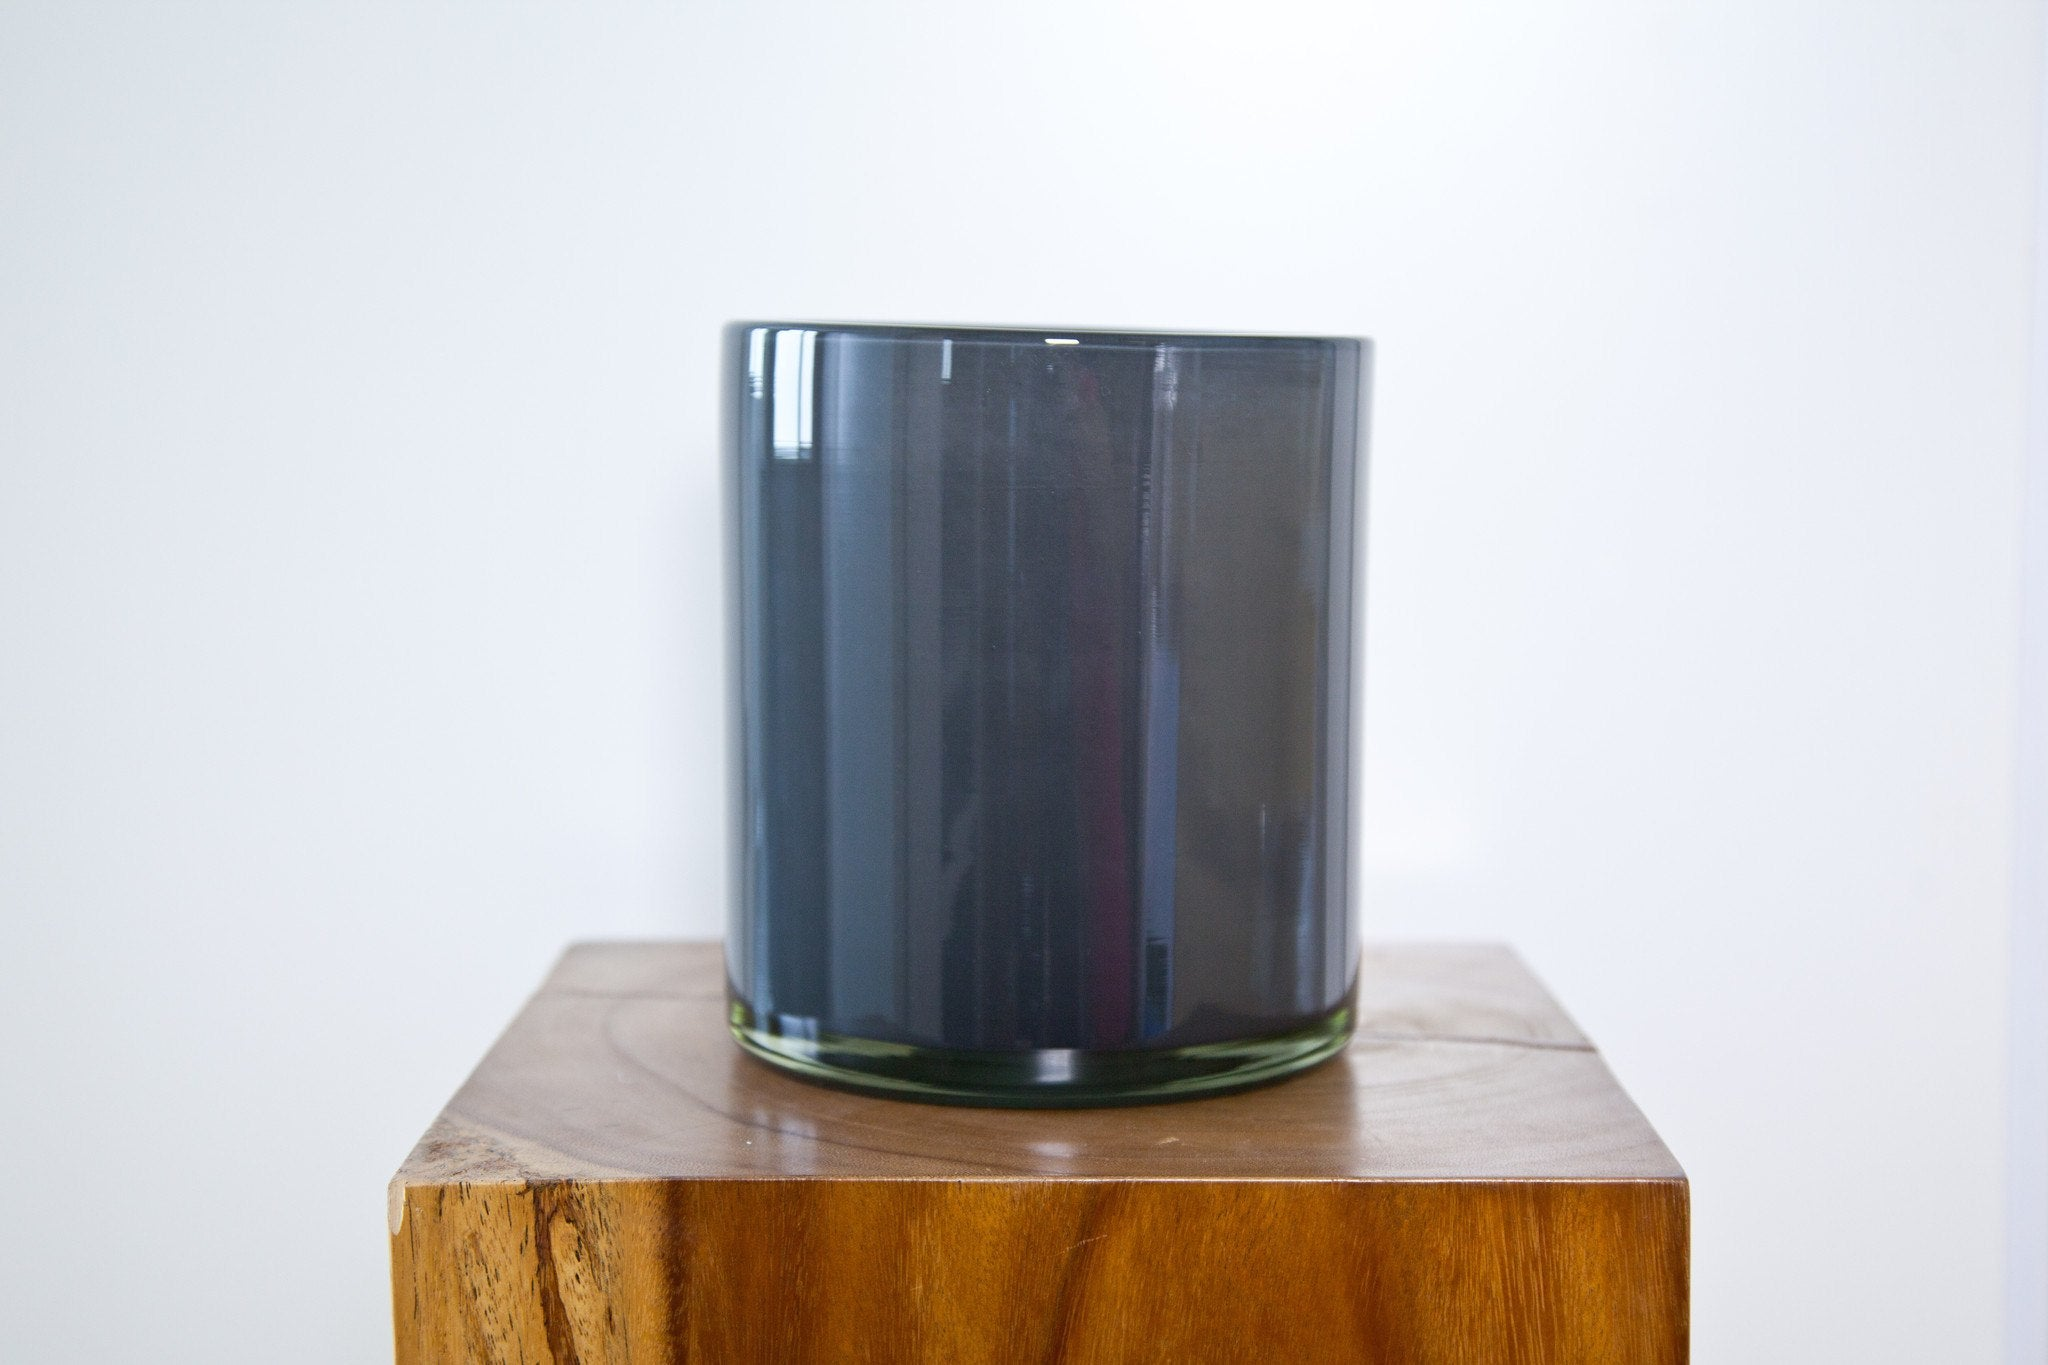 HENRY DEAN CYLINDER VASE IN GREY - Eclectic Cool